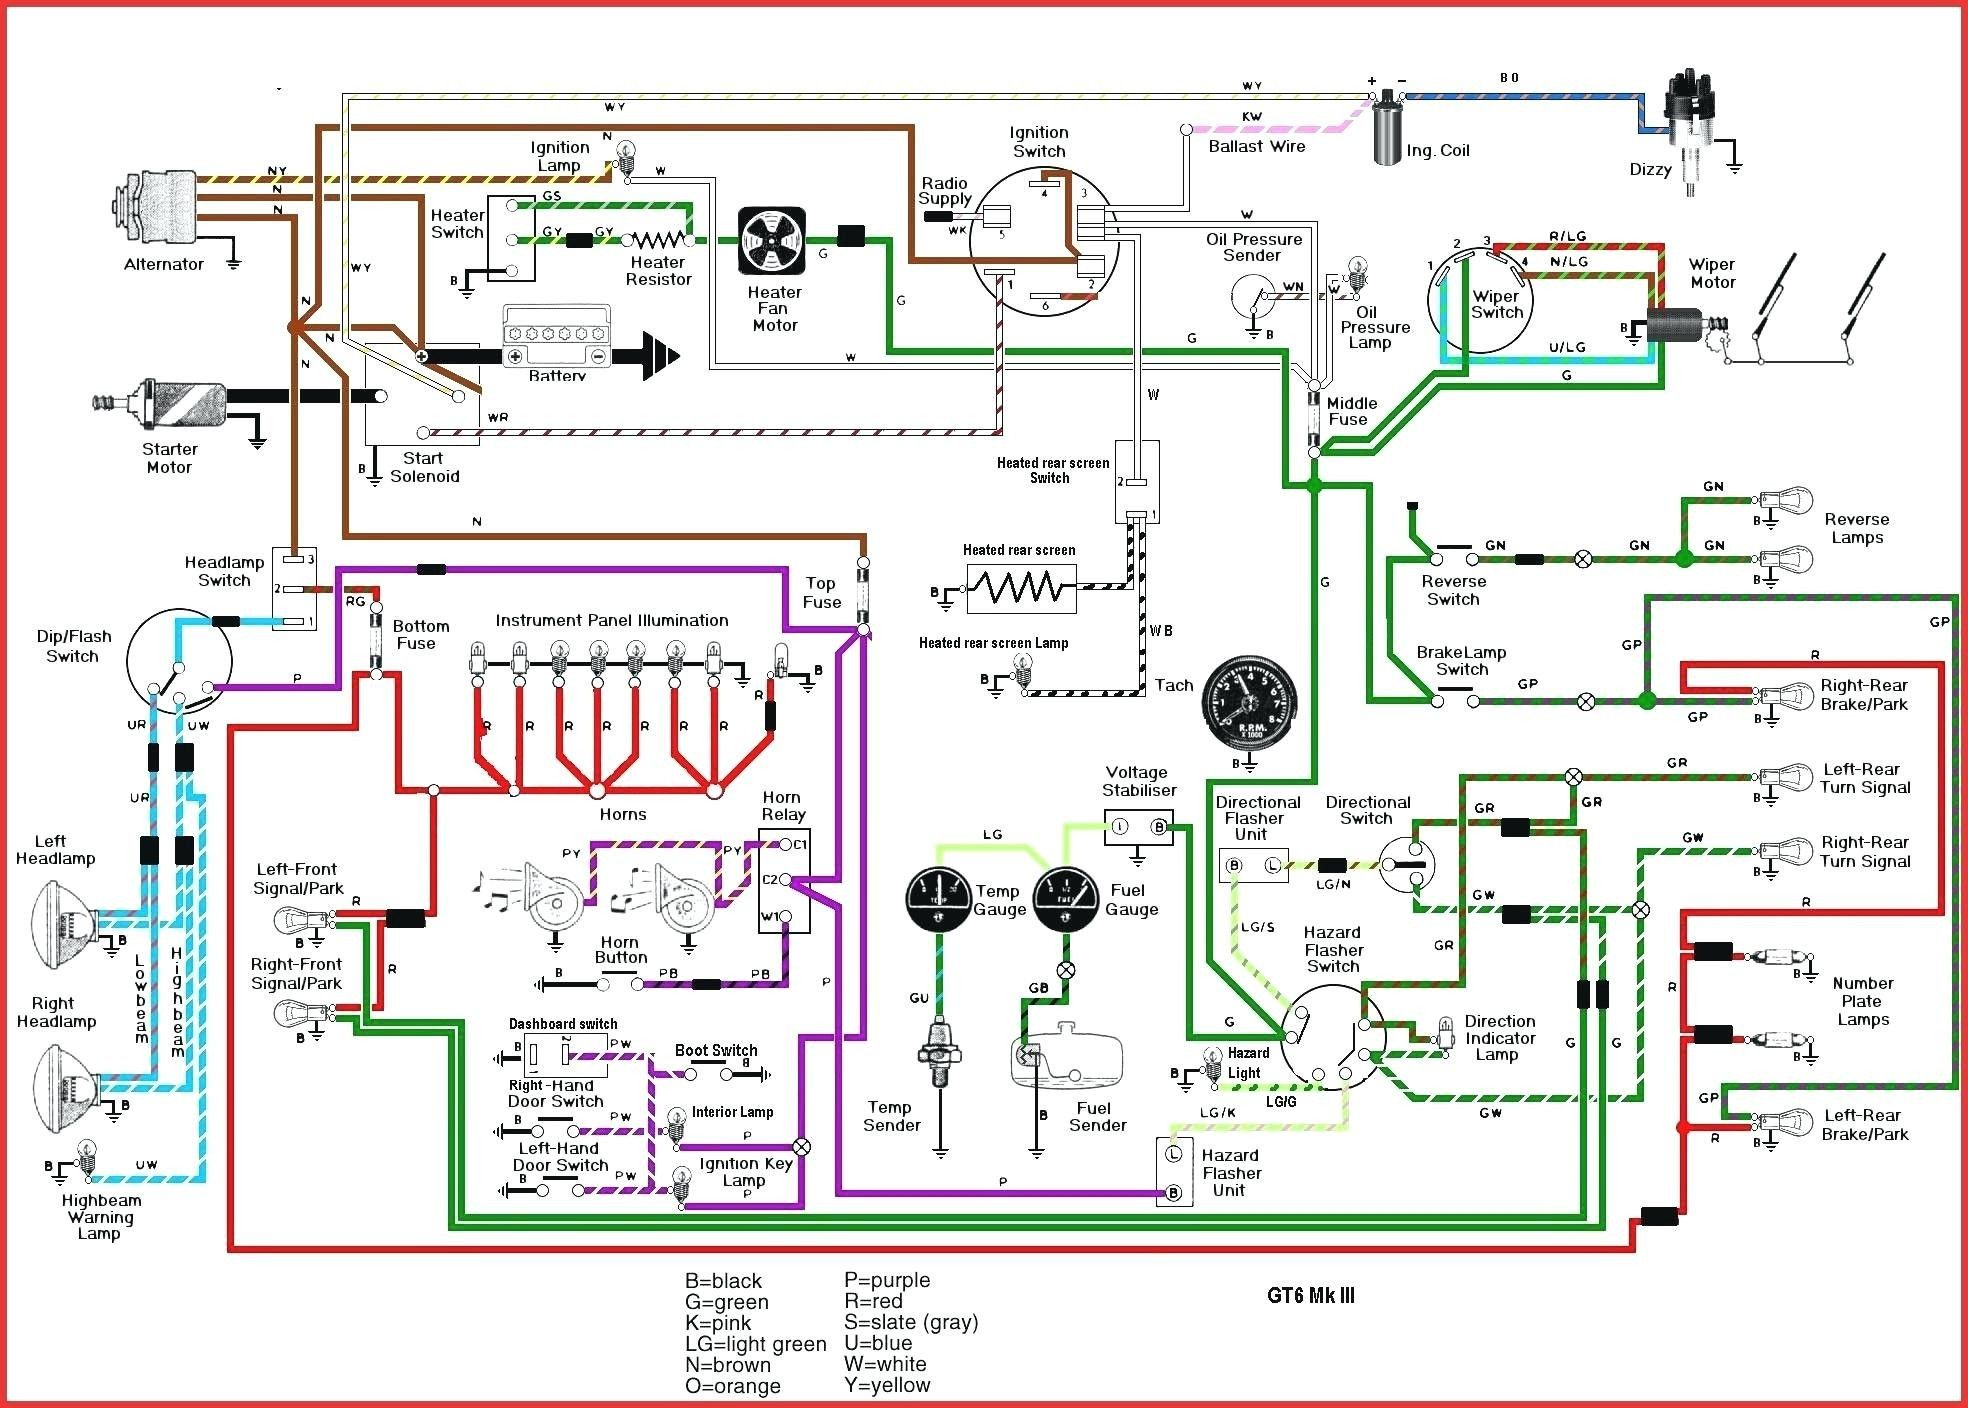 Pin by John Houston on Wiring Diagram Sample | Electrical ... Single Line Drawing Electrical on earthing system, overhead line, circuit breaker, single-phase electric power, straight-line diagram, block diagram, functional flow block diagram, circuit diagram, earth leakage circuit breaker, overhead power line, distribution board, power system harmonics, electricity distribution,